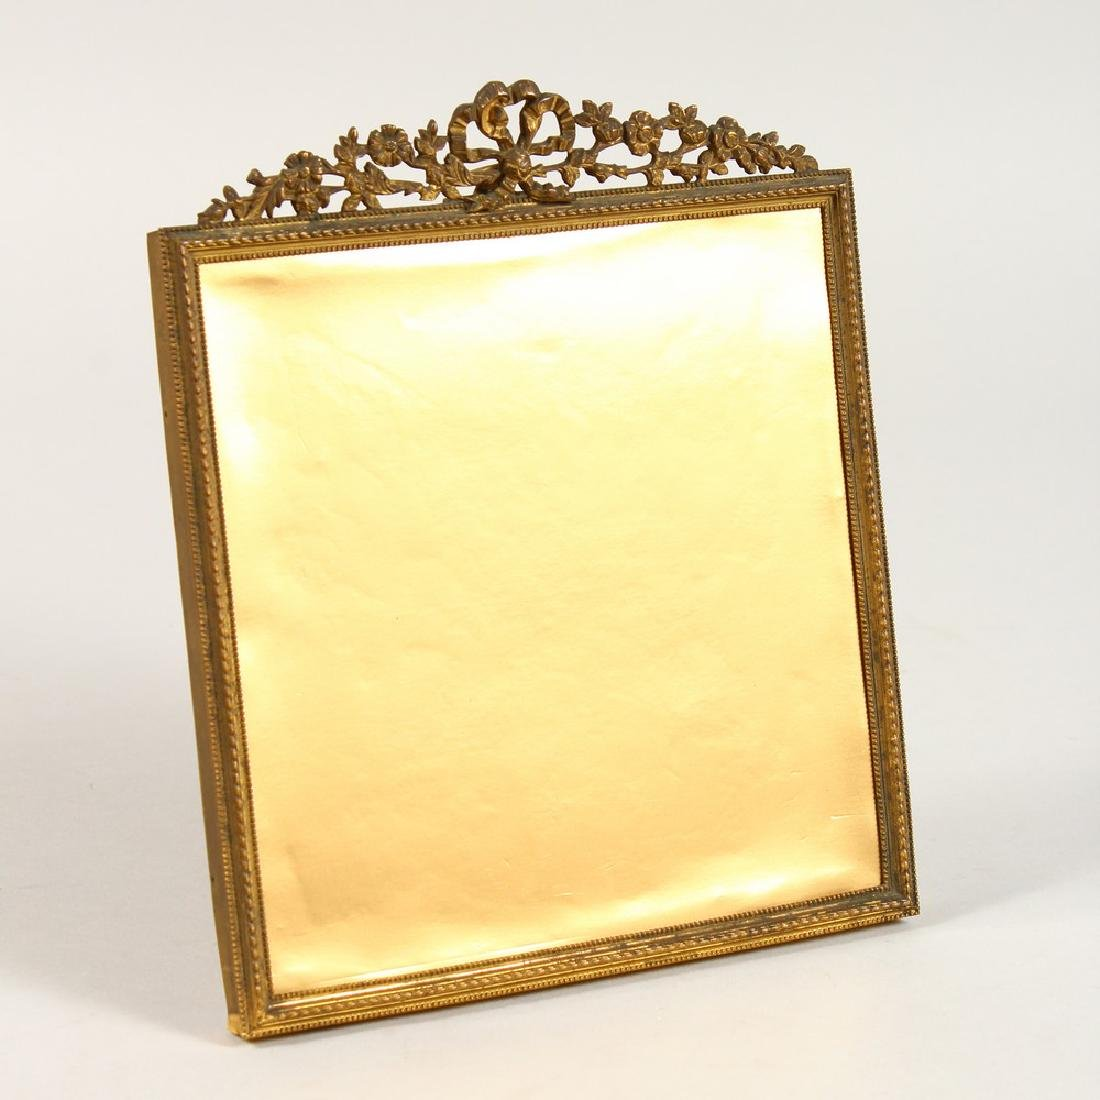 AN ORMOLU PICTURE FRAME, with ribbon and floral